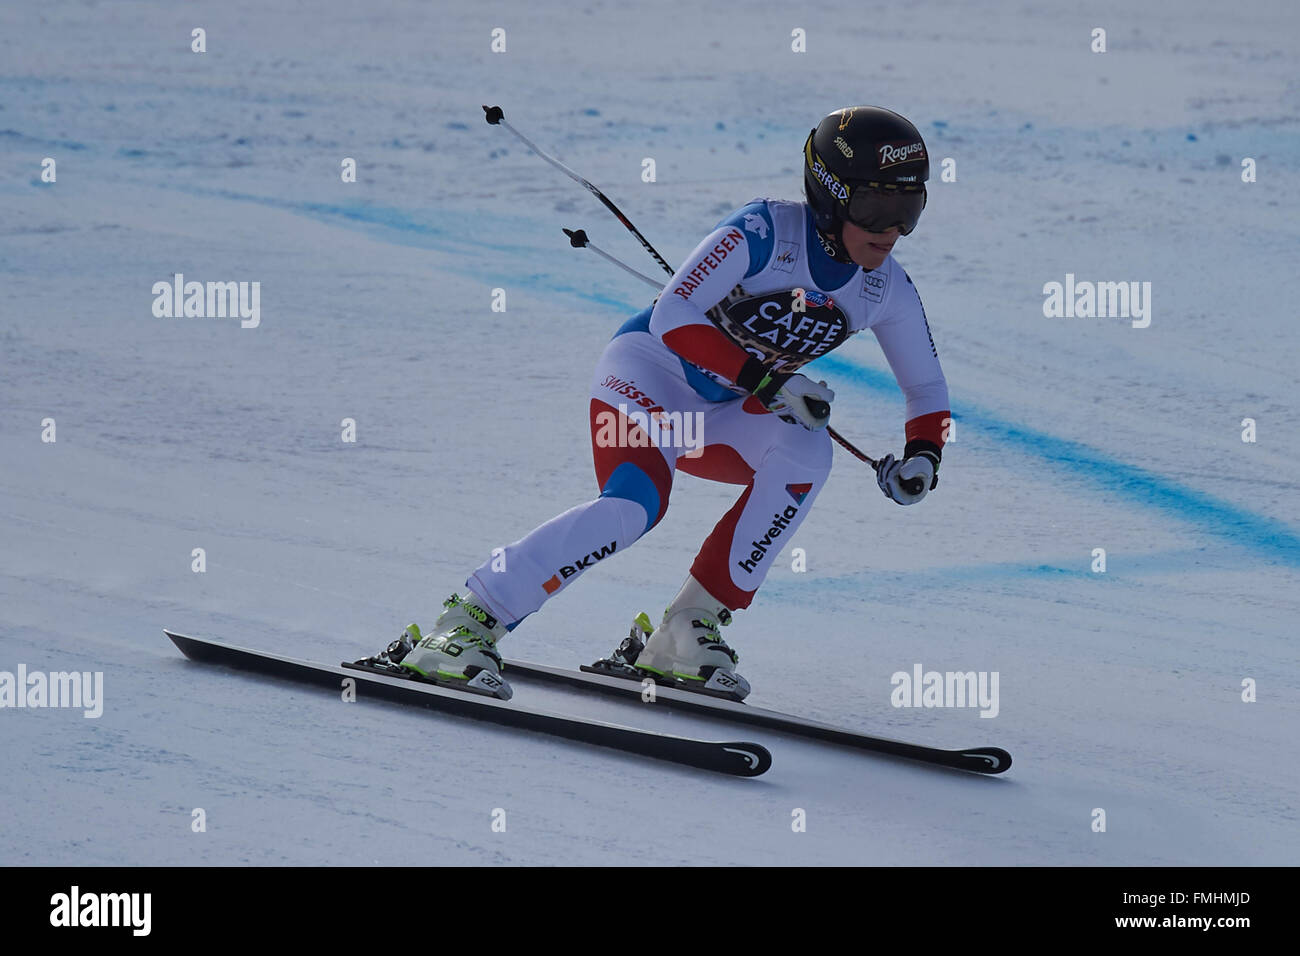 Lenzerheide, Switzerland. 12th March, 2016. Lara Gut (SUI) during her run in the Ladies' Super G at the Audi FIS Stock Photo